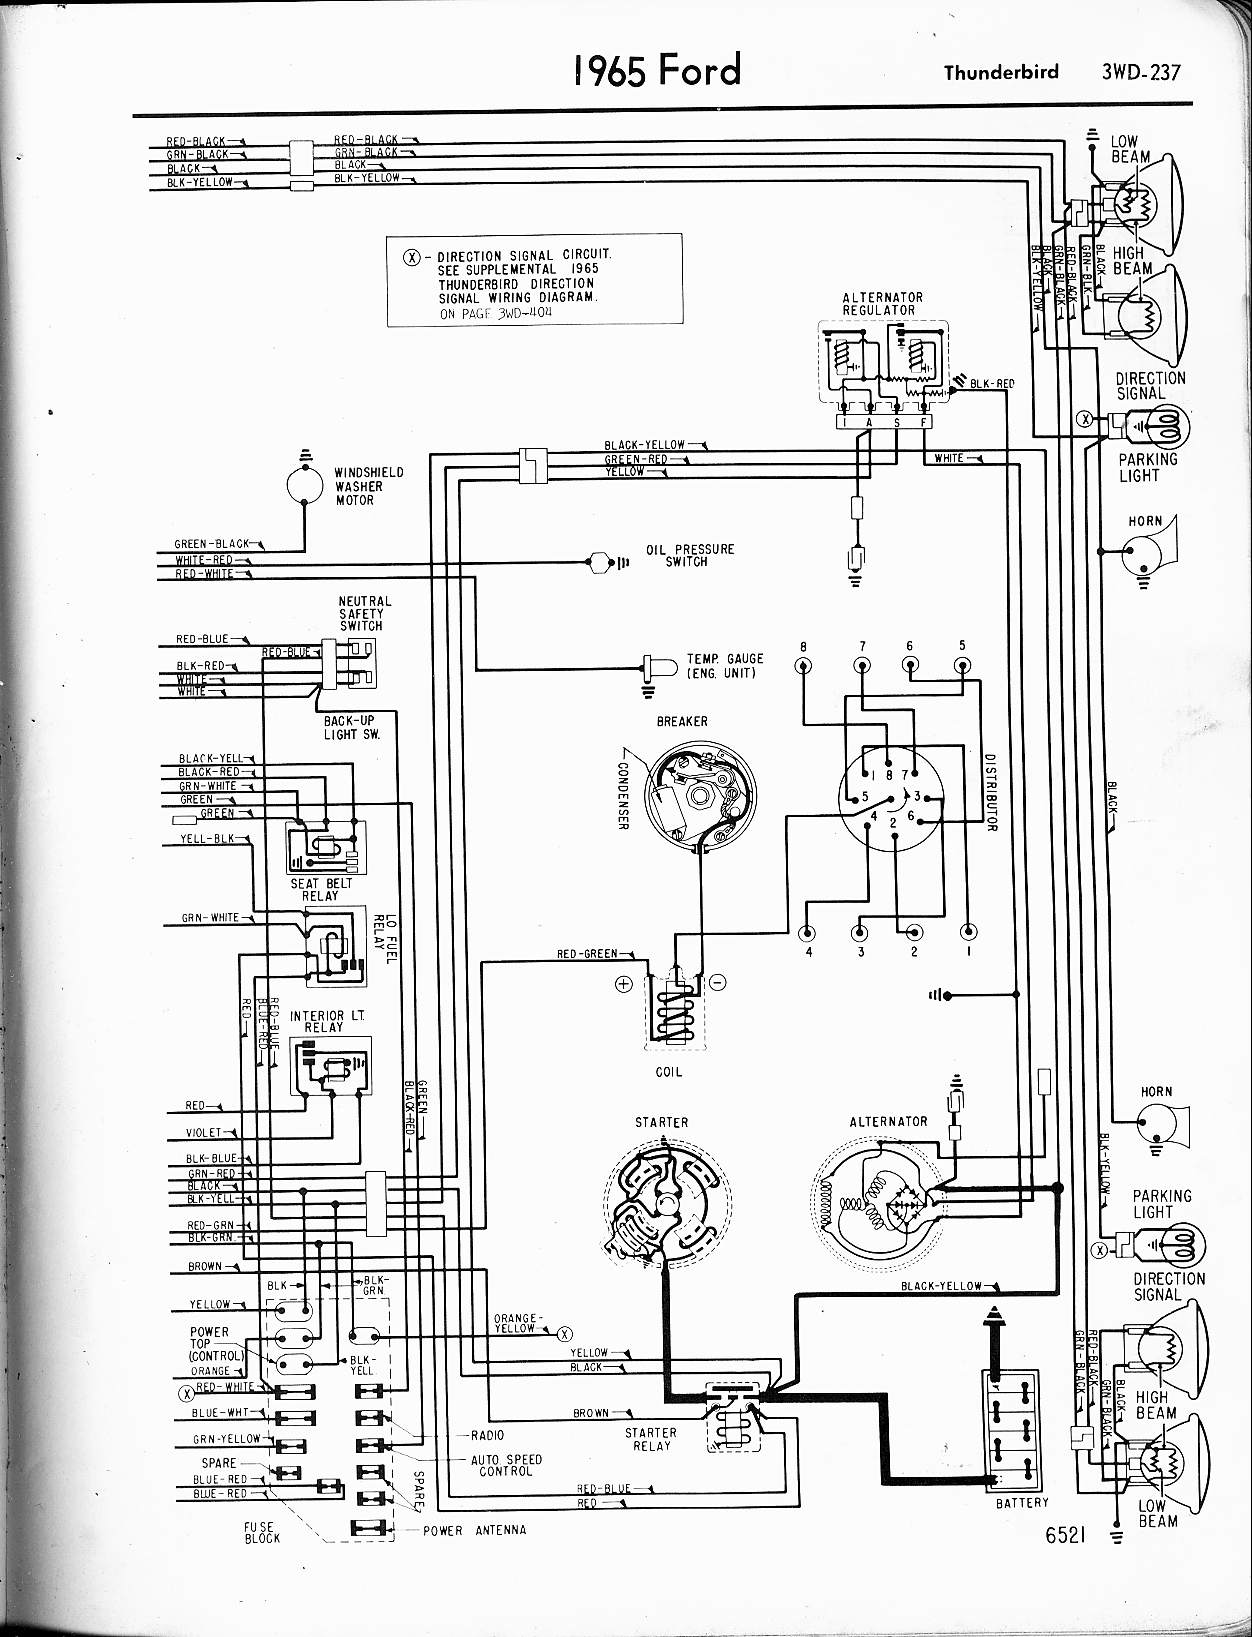 MWire5765 237 57 65 ford wiring diagrams Ford E 350 Wiring Diagrams at creativeand.co